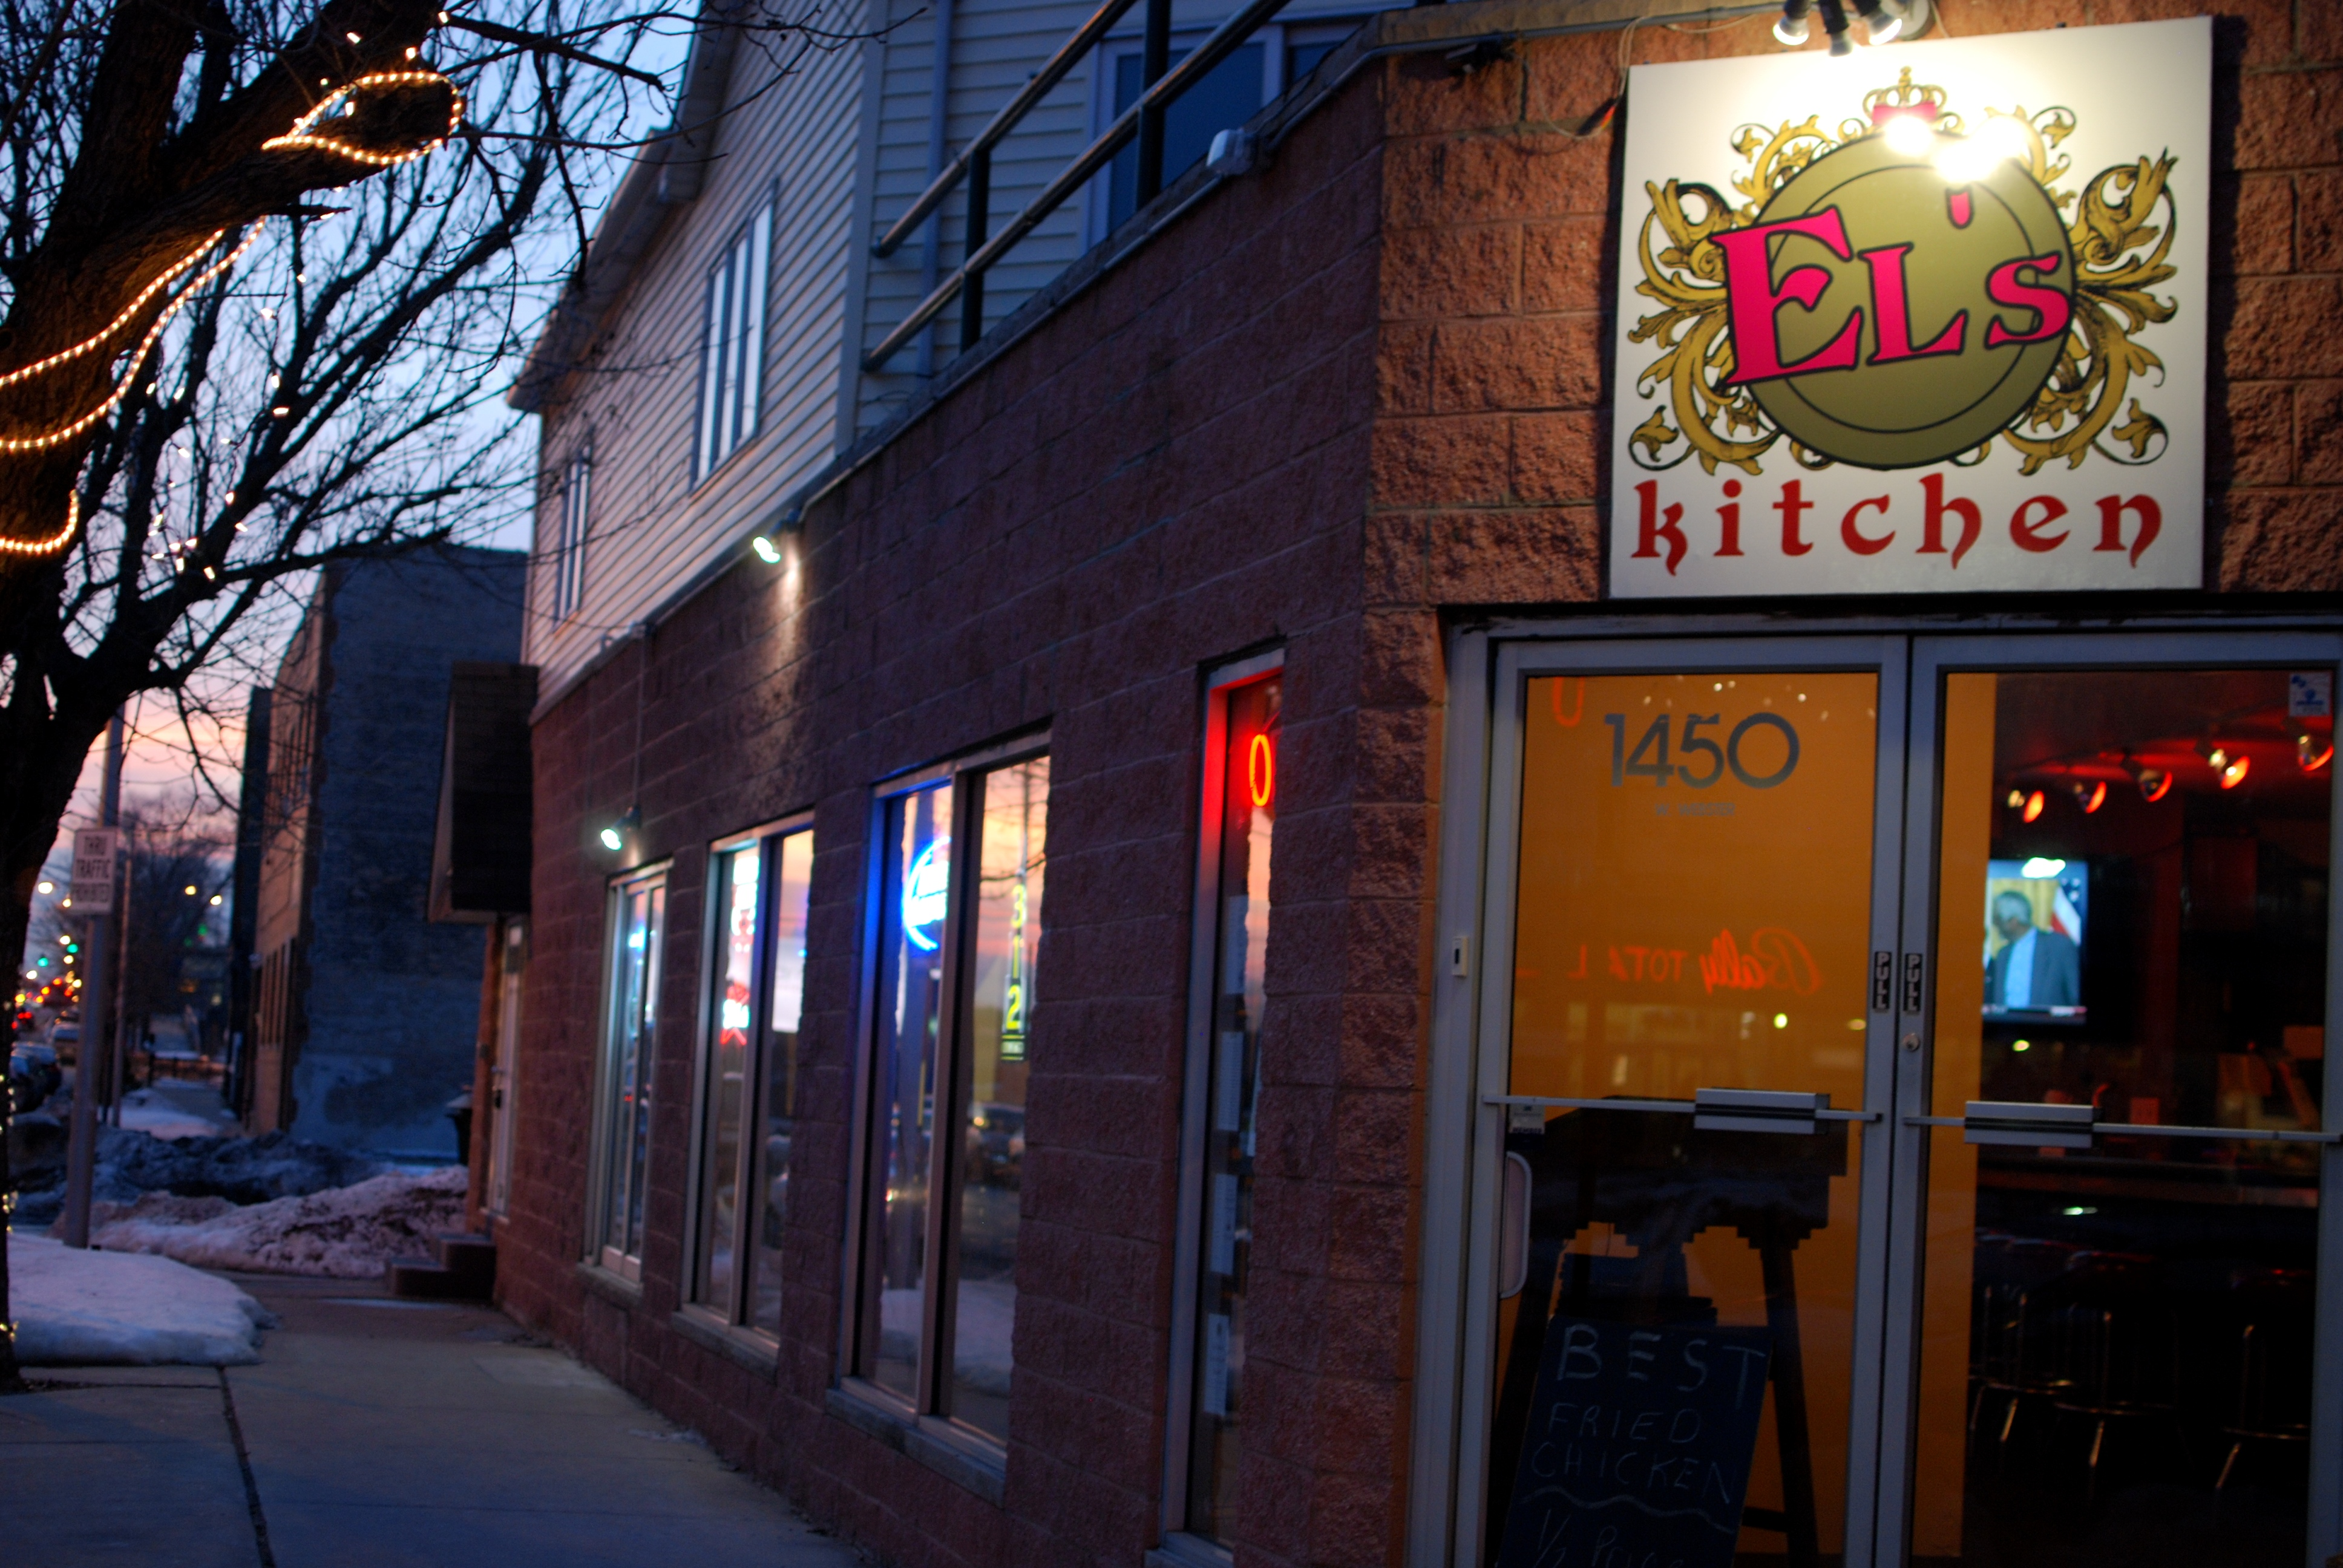 """opening a restaurant July 11: fino's """"soft opening,"""" a complimentary feed for the investors and some 75 other invited guests, happens tonight with candles flickering on the tables and a huge vase of flowers on the hostess stand, the restaurant looks stunning."""